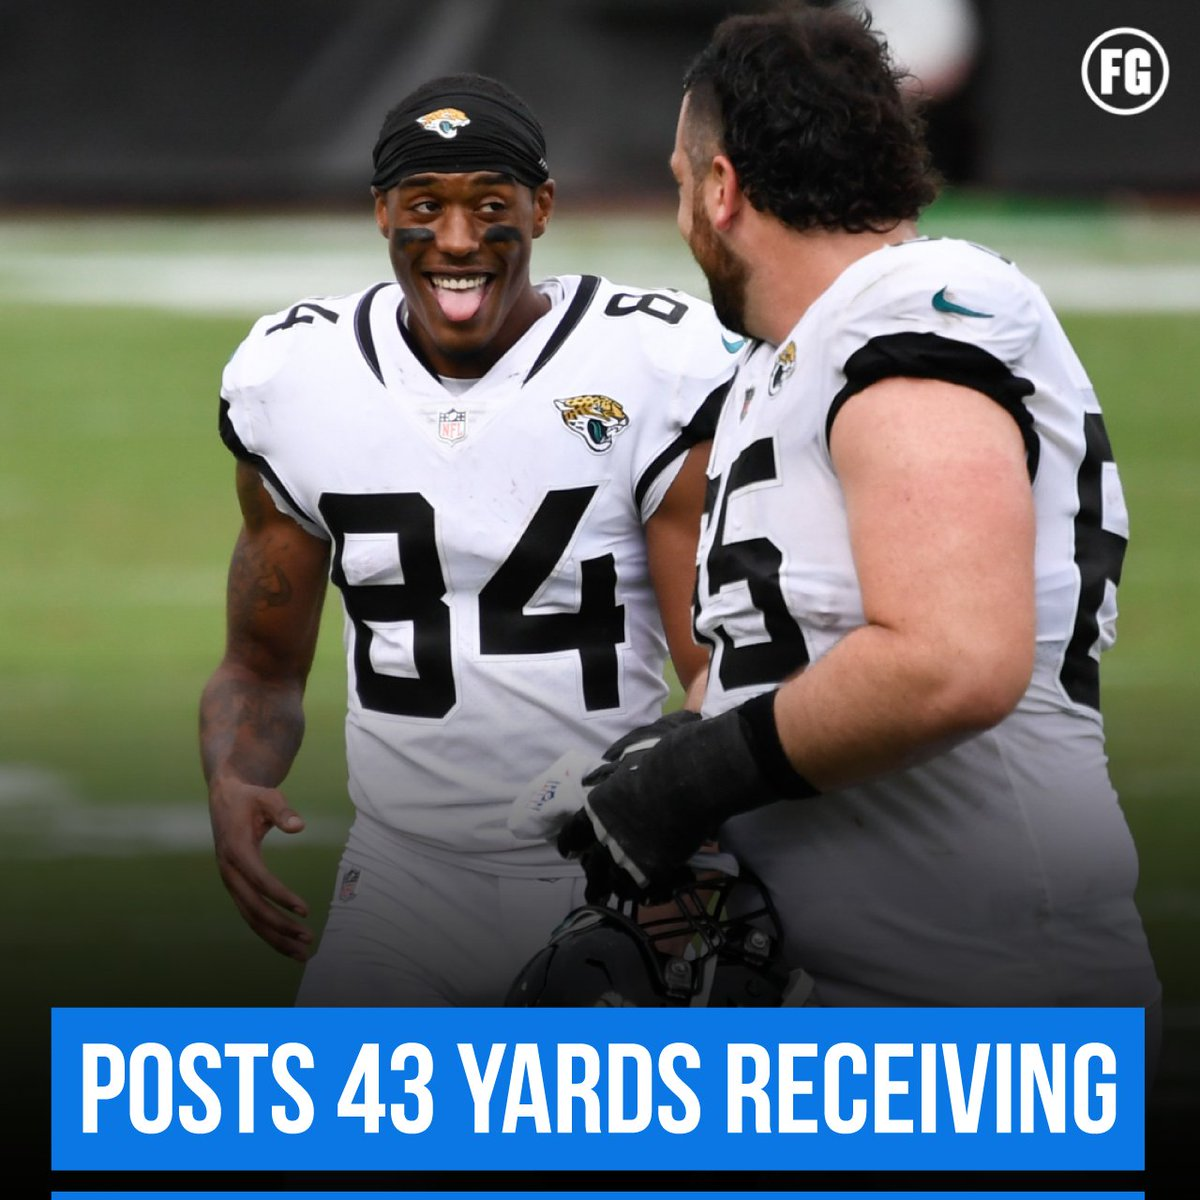 Jacksonville Jaguars WR Keelan Cole caught four of five targeted passes for 43 yards on Thursday, Sept. 24, against the Miami Dolphins.  #FantasyGuru  #NFL https://t.co/xttp6wG5FD